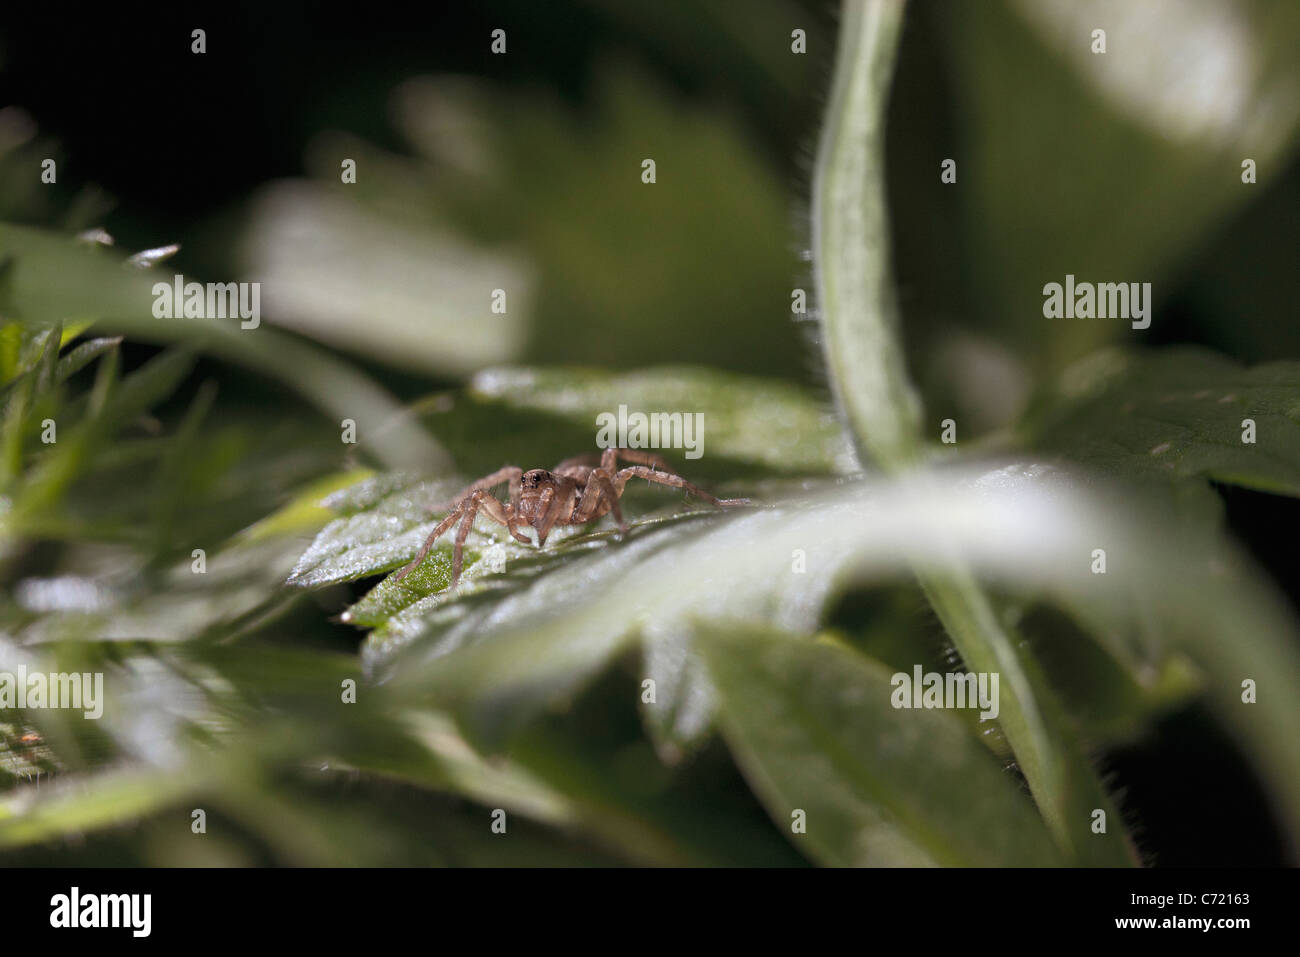 Tiny spider on leaf, close-up - Stock Image